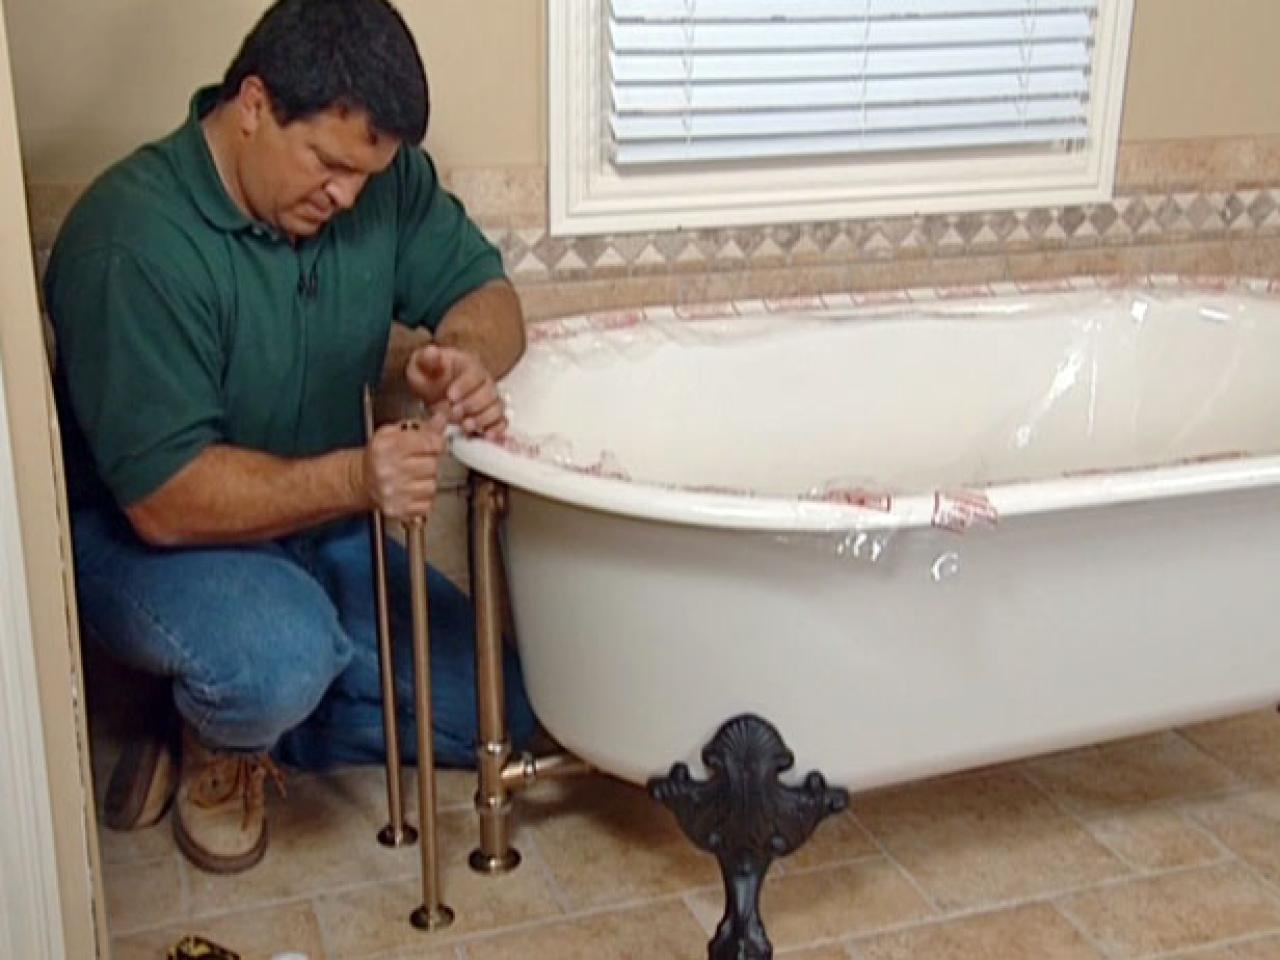 Step 4 How to Install Plumbing for a Claw Foot Tub  how tos DIY